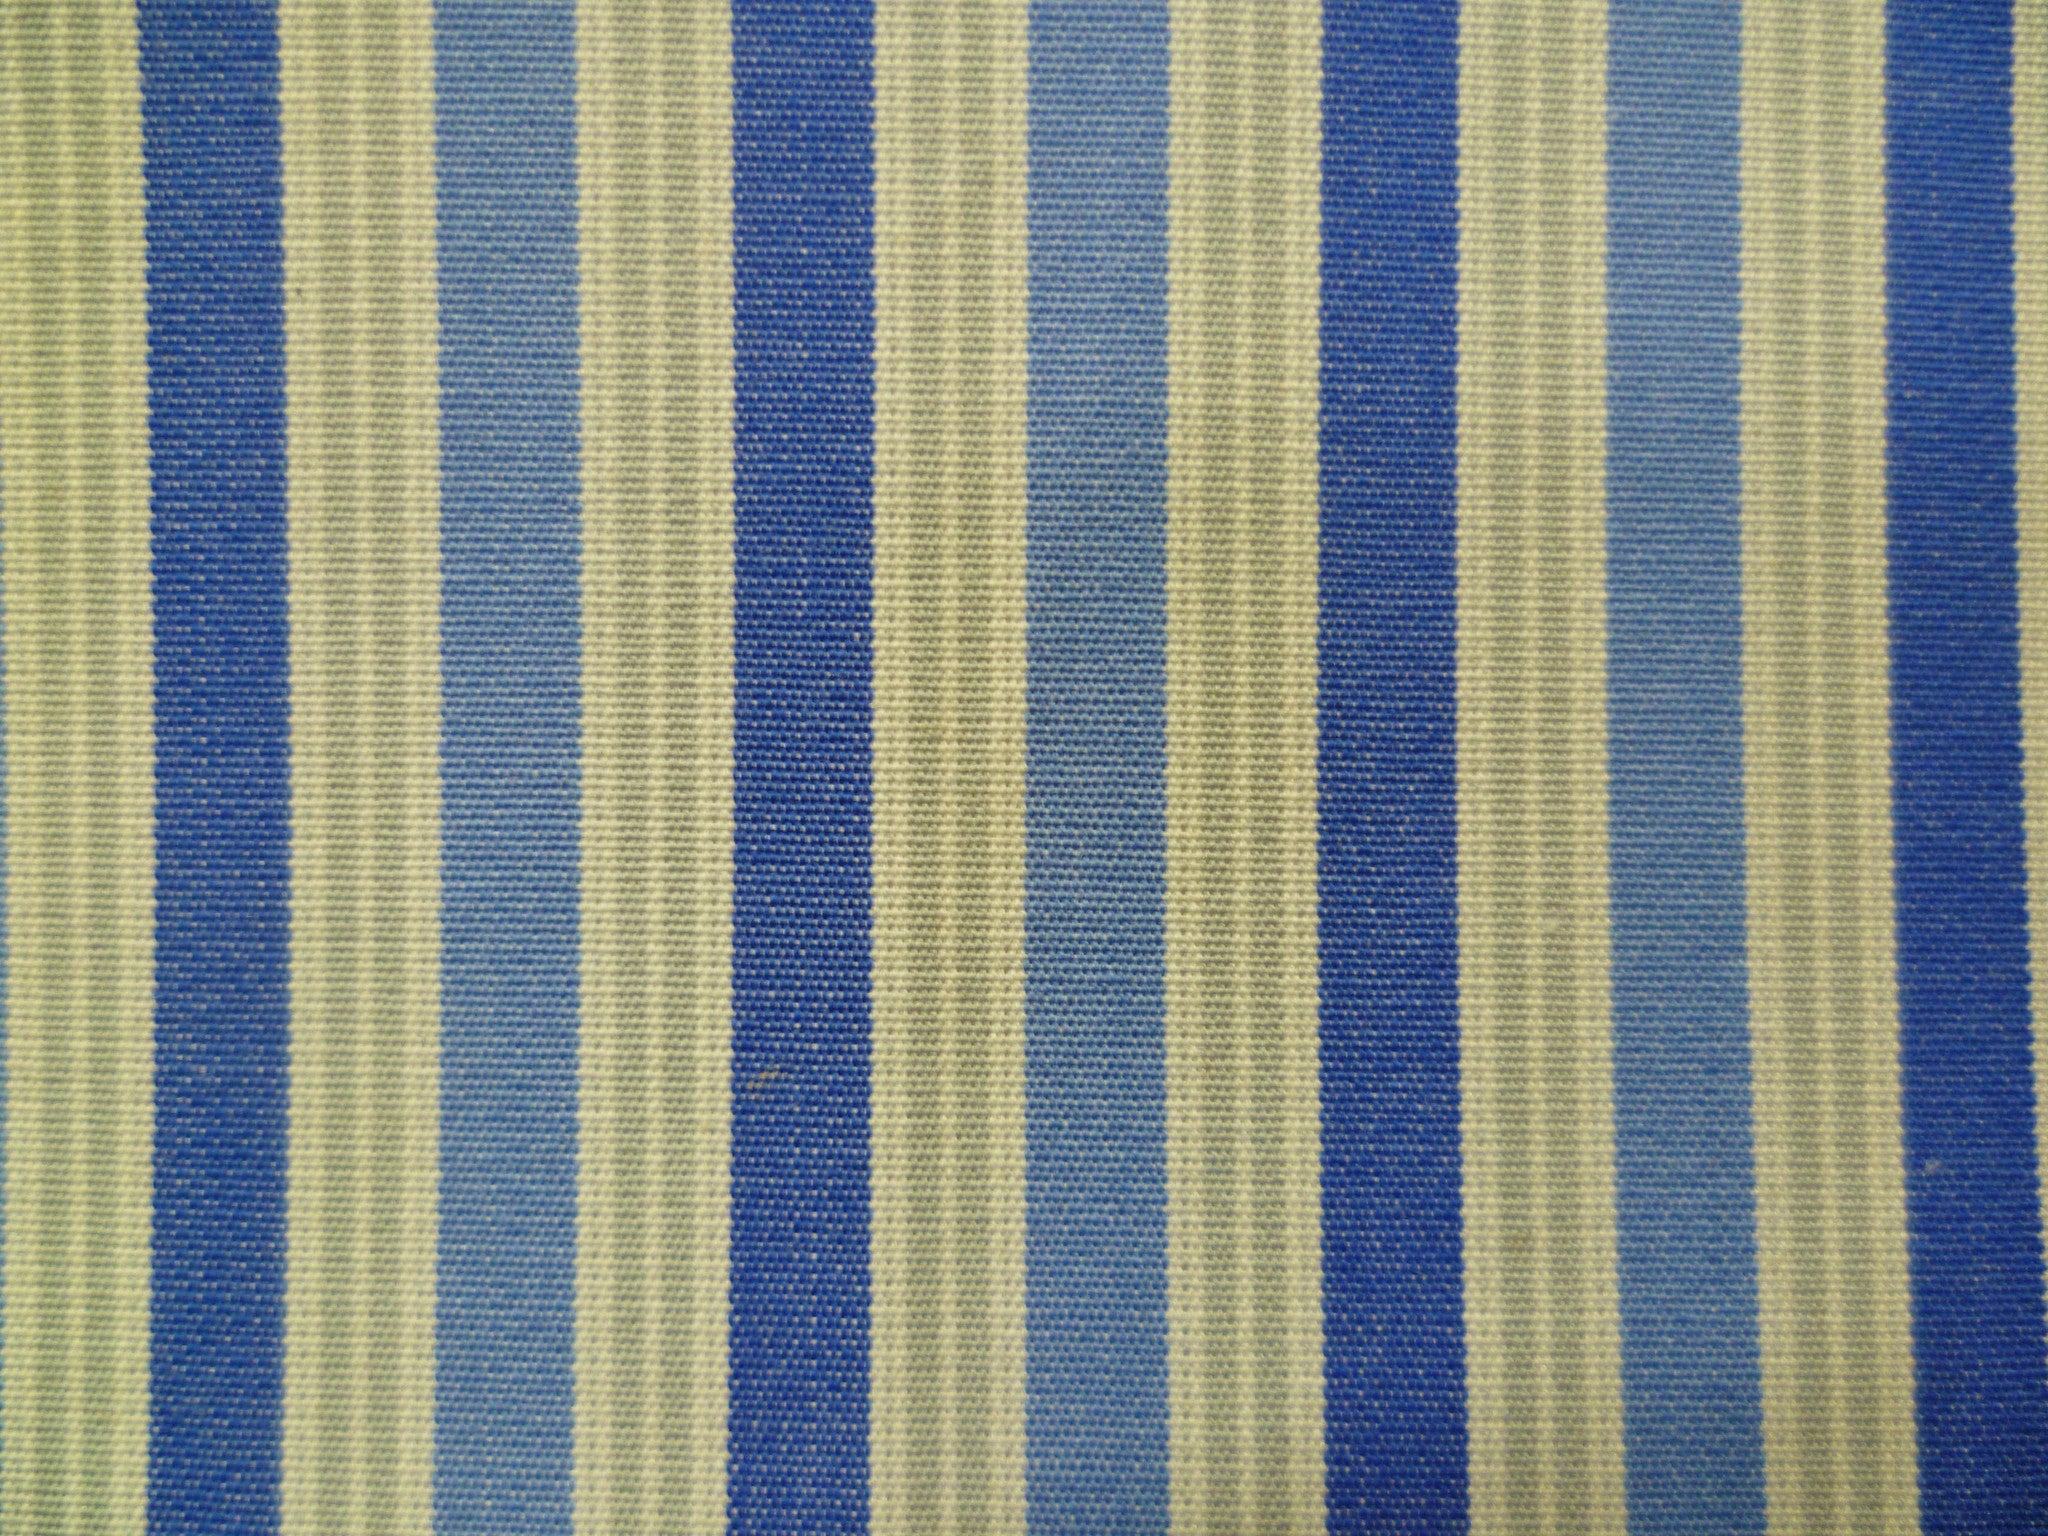 Ocean Blue, Stone Grey, Cornflower Blue and White Multi-striped Cotton